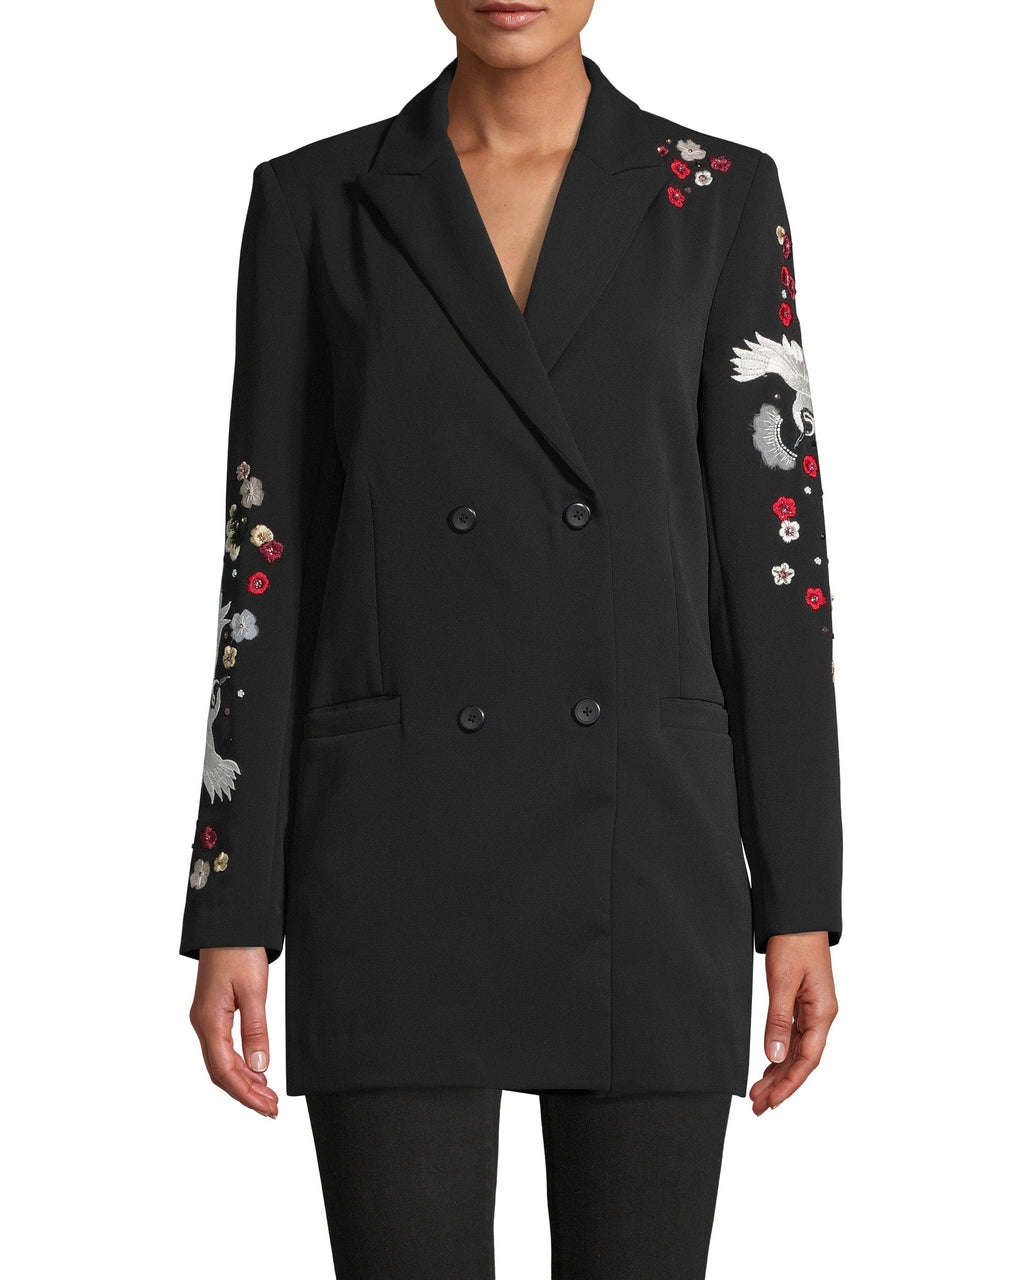 CO10135 - CRANE AND CHERRY BLOSSOM EMBROIDERED BLAZER - tops - shirts - NO MORE BORING BLAZERS. THIS DOUBLE BREASTED BLAZER IS ADORNED WITH CRANE AND CHERRY BLOSSOM EMBROIDERY UP THE SLEEVES AND ON THE BACK.